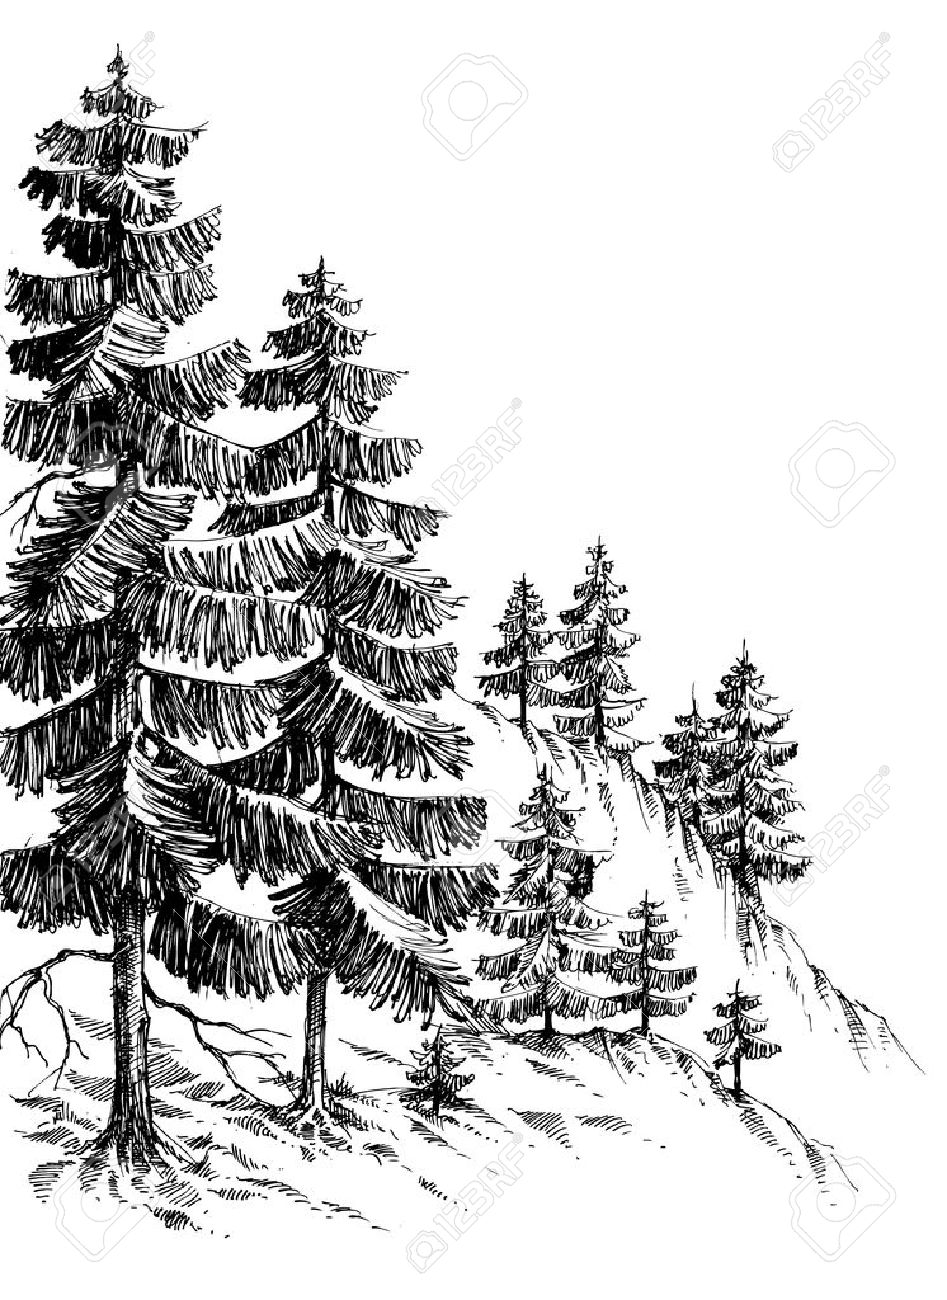 Pine forest, winter mountain landscape drawing - 46666935